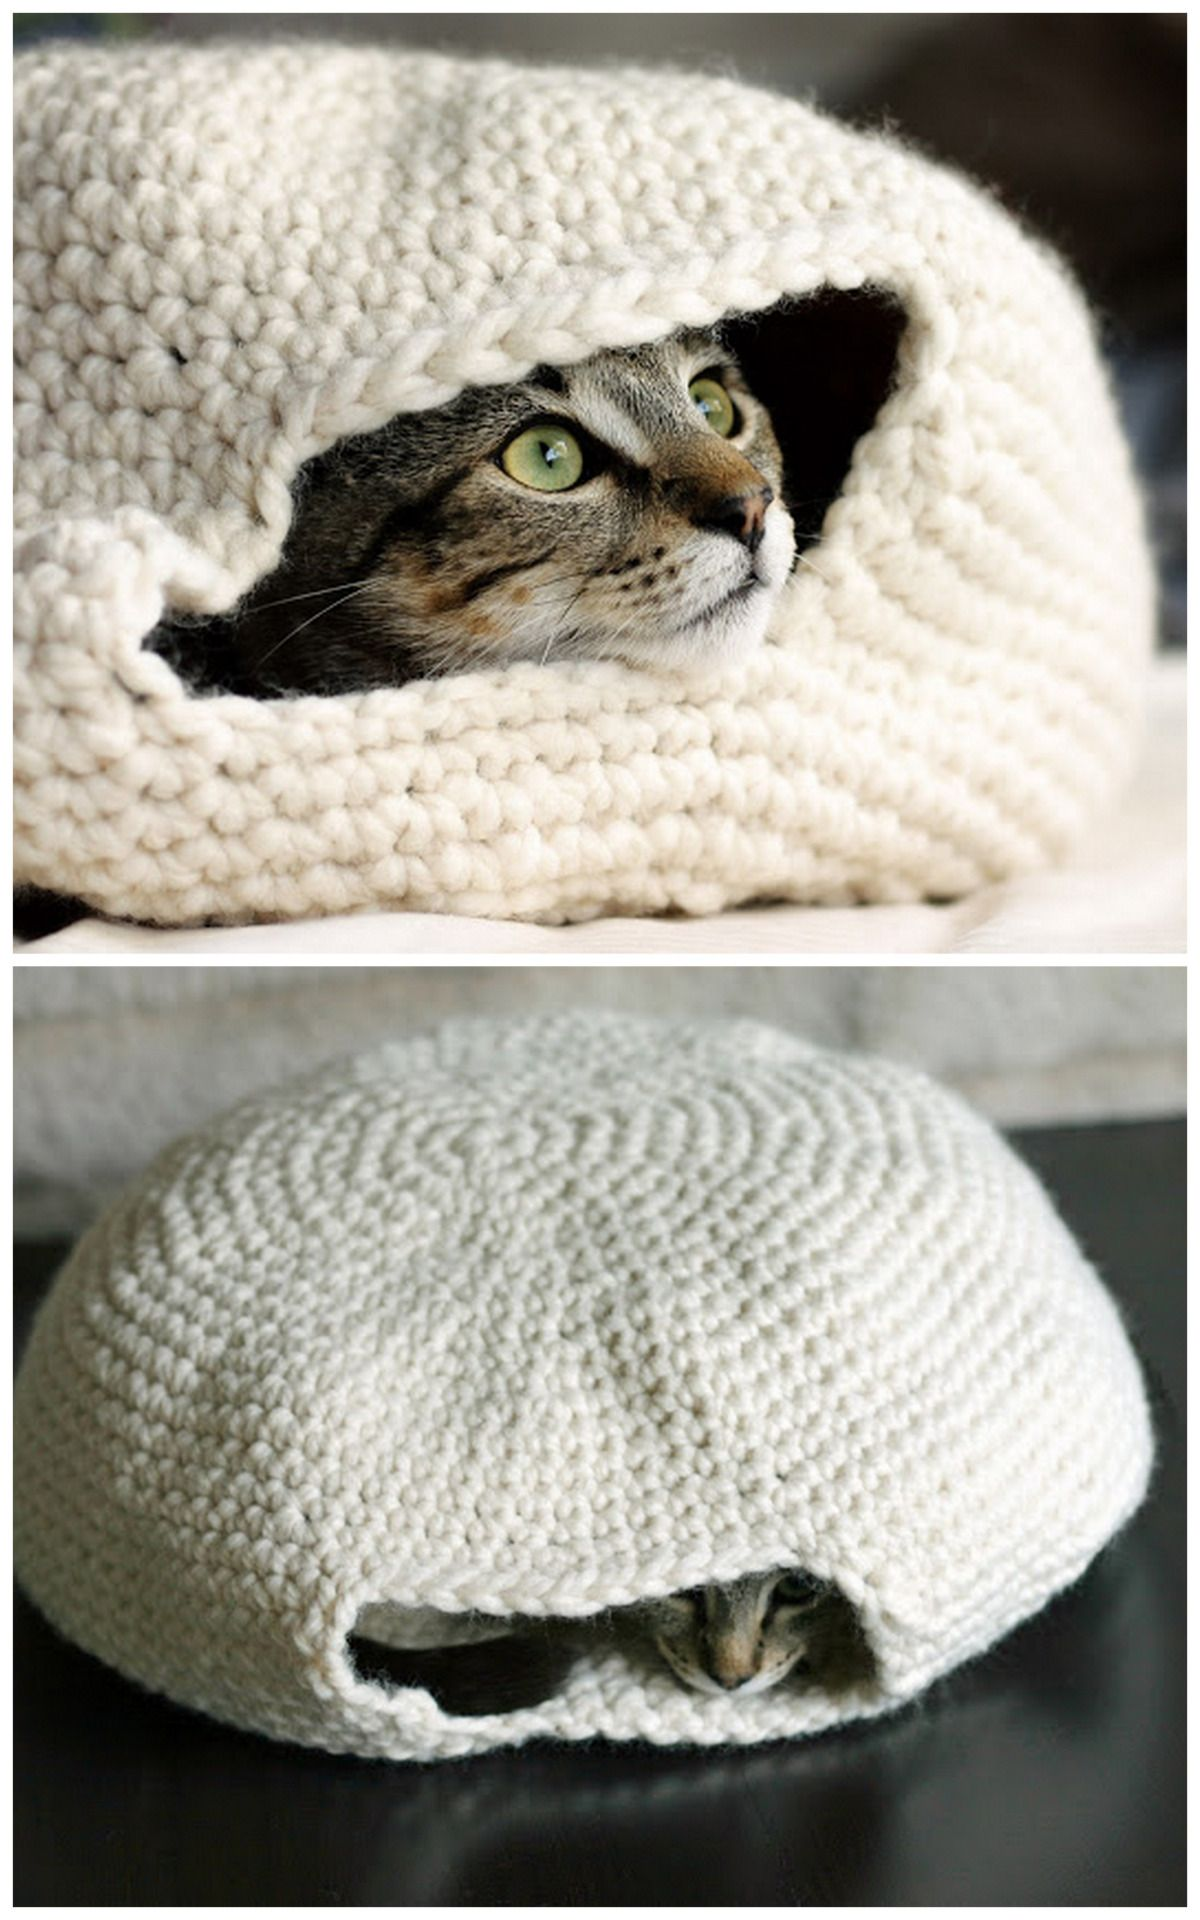 "DIY Crochet Cat Nest ""Muffin Oven"" Pattern by Eilen Tein on Ravelry ..."